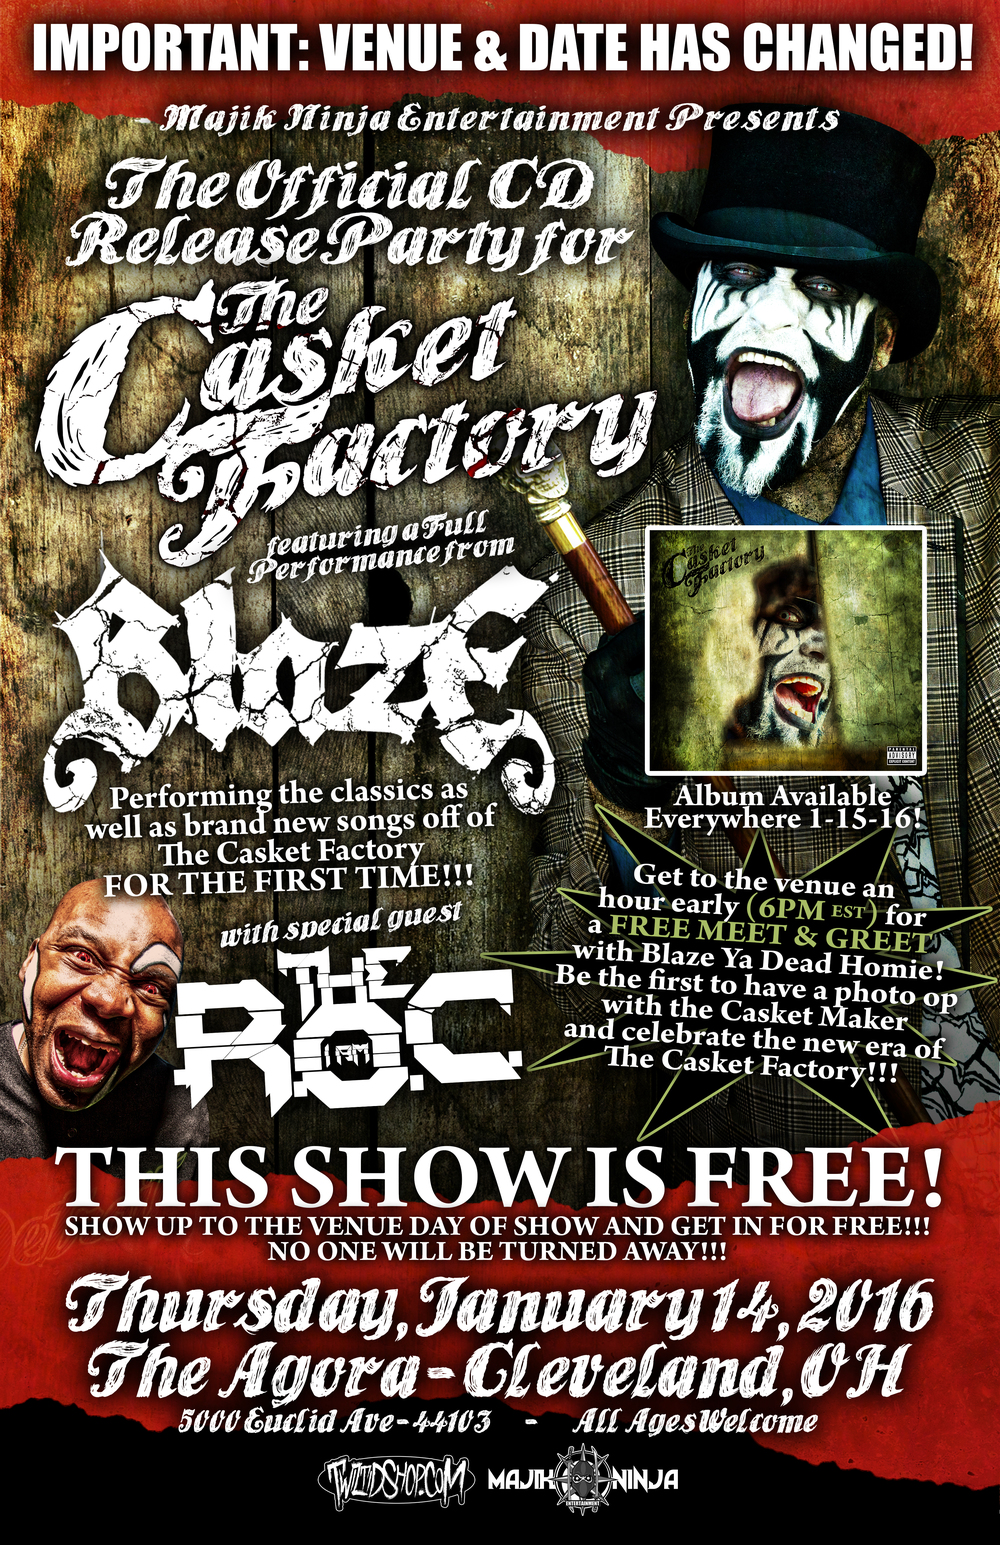 Casket Factory Release Party 11x17 VENUE CHANGE.jpg